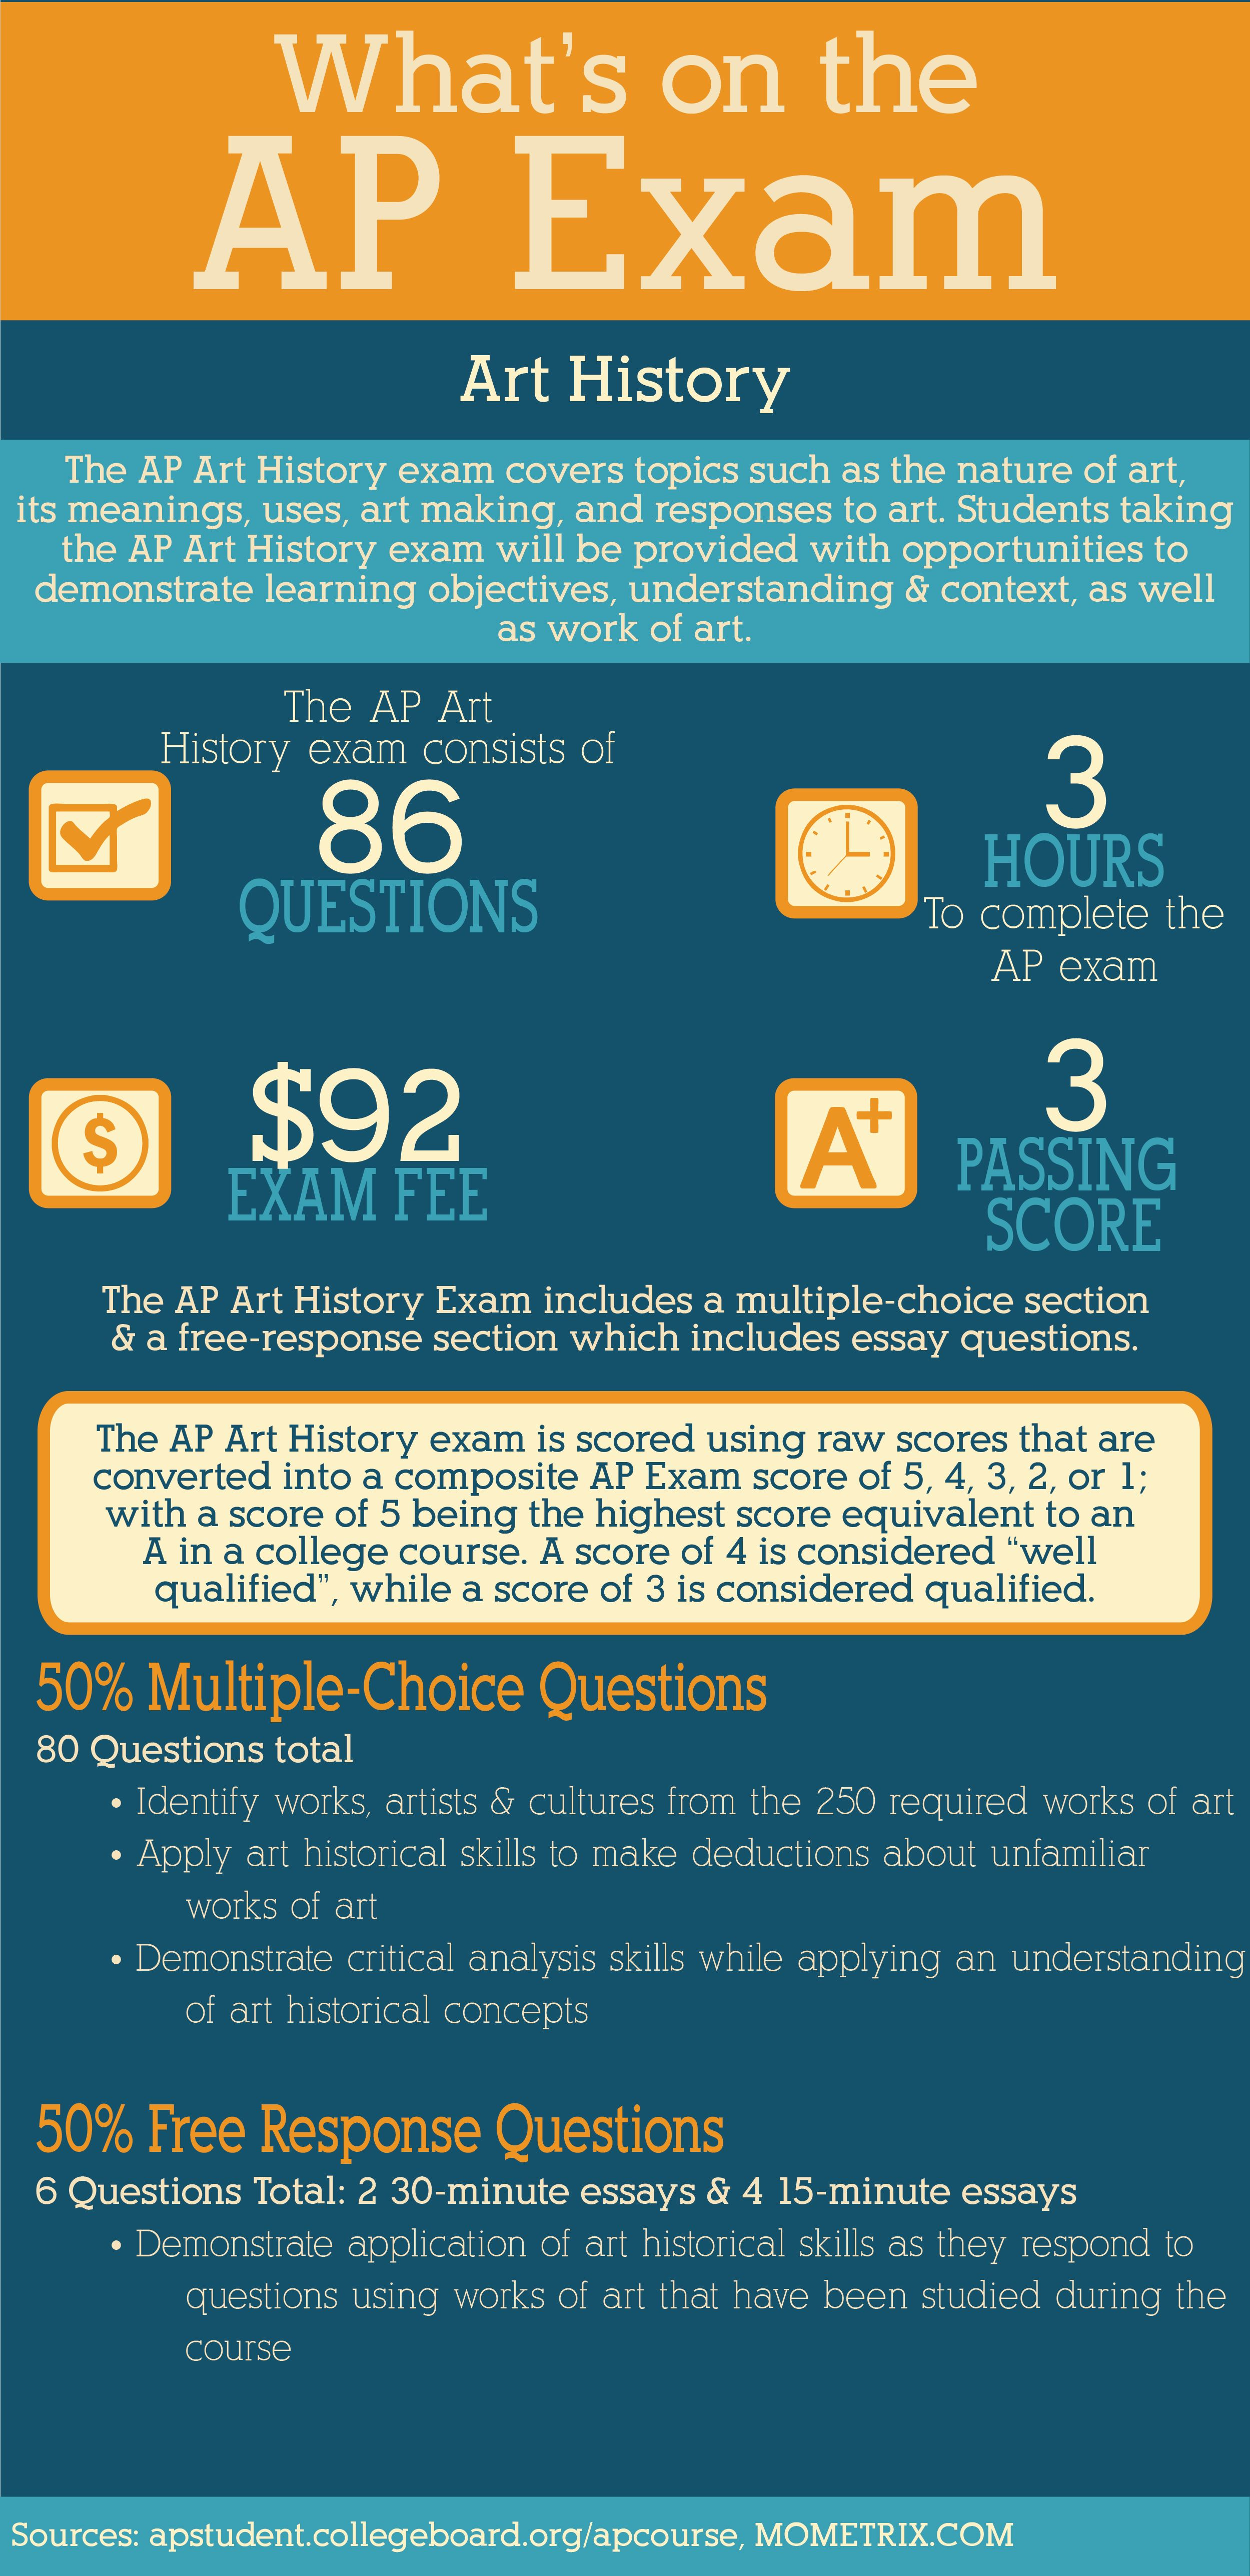 ap art history long essays Research ap paper history art advanced placement human geography (also ap art history long essay examples known as a humservices training plan ap human geo, ap geography, aphg, ap huge, research methodology in sociology hgap, ap hugs, aphug, or ap human) is an advanced.